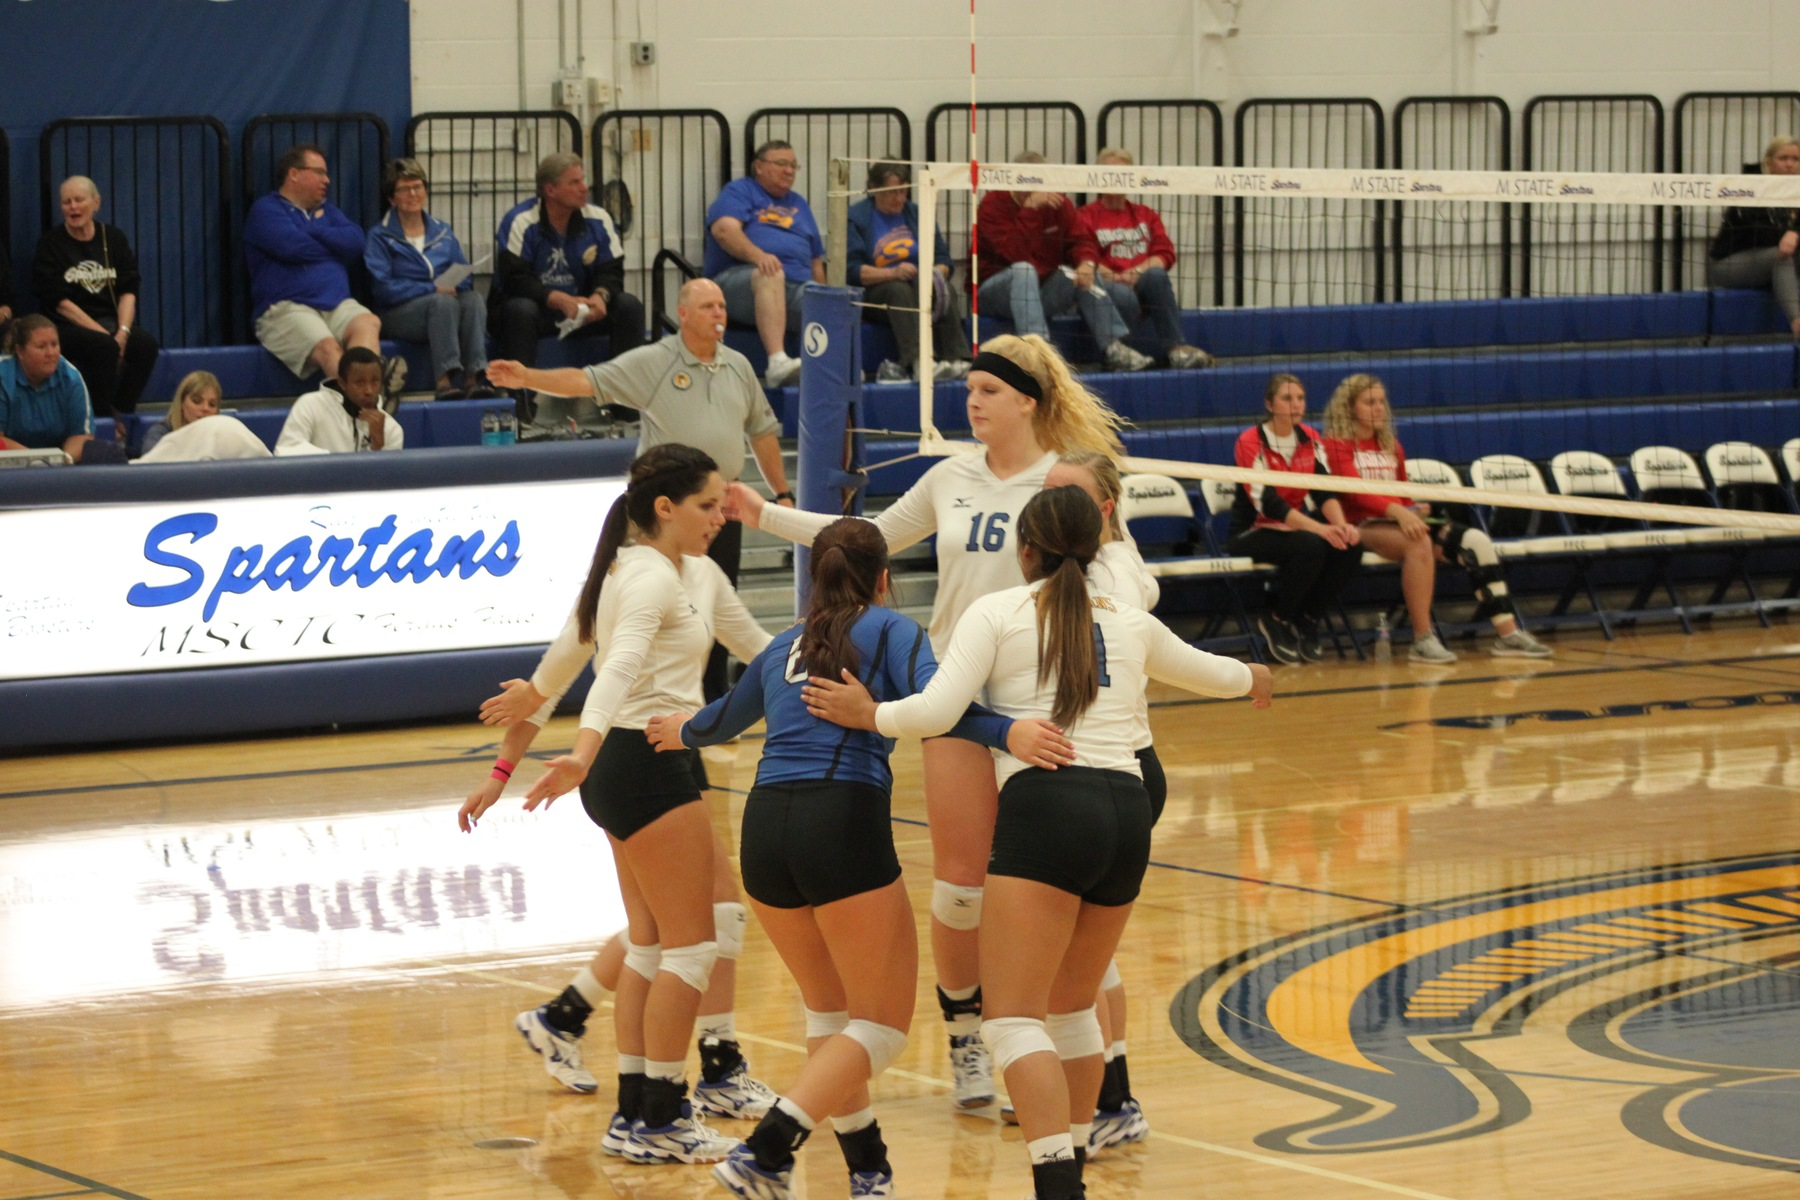 Spartans Fall in 5 Sets to 4th Rank Cyclones